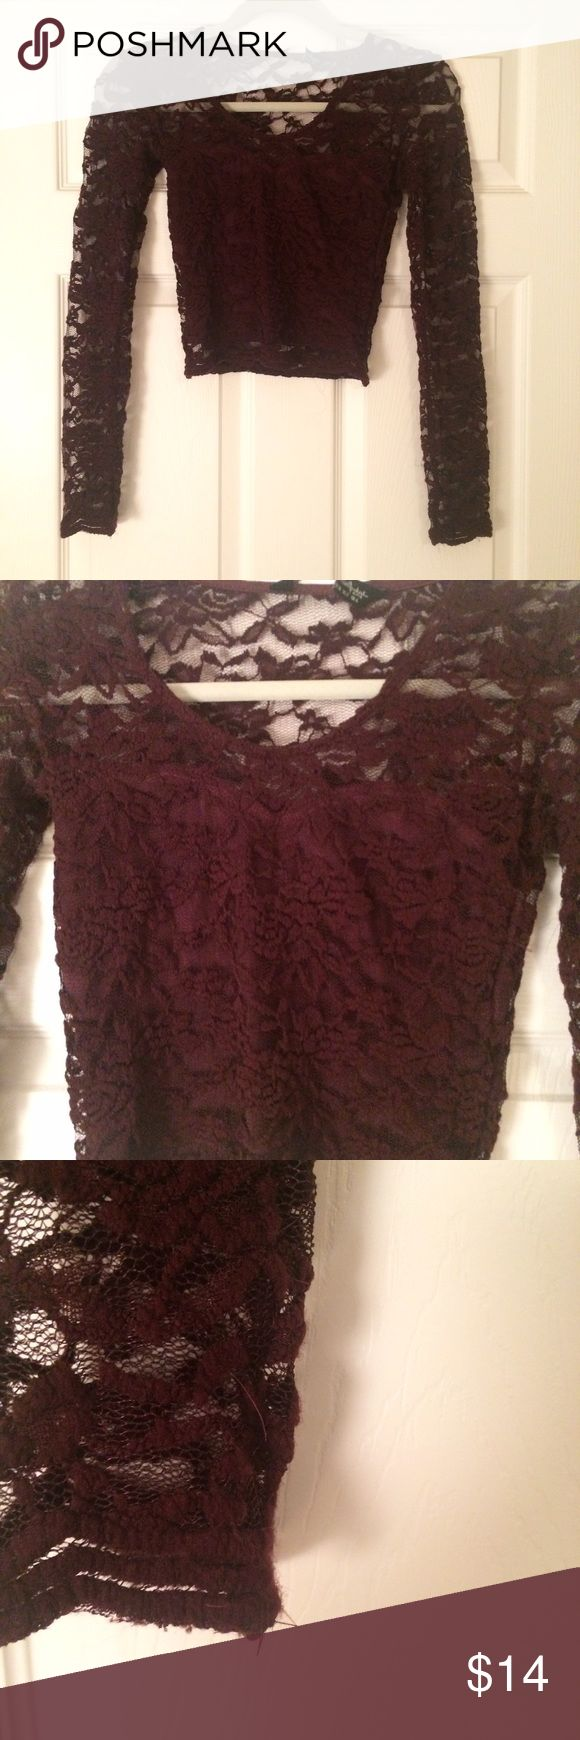 NEW 🔥Lace crop top +super sexy lace crop top +deep plum color +all over lace with front and back bodice lined + no holes in lace but the lace has so loose threads due to nature of fabric +pairs perfect with high waisted denim or skirt miss selfridge Tops Crop Tops